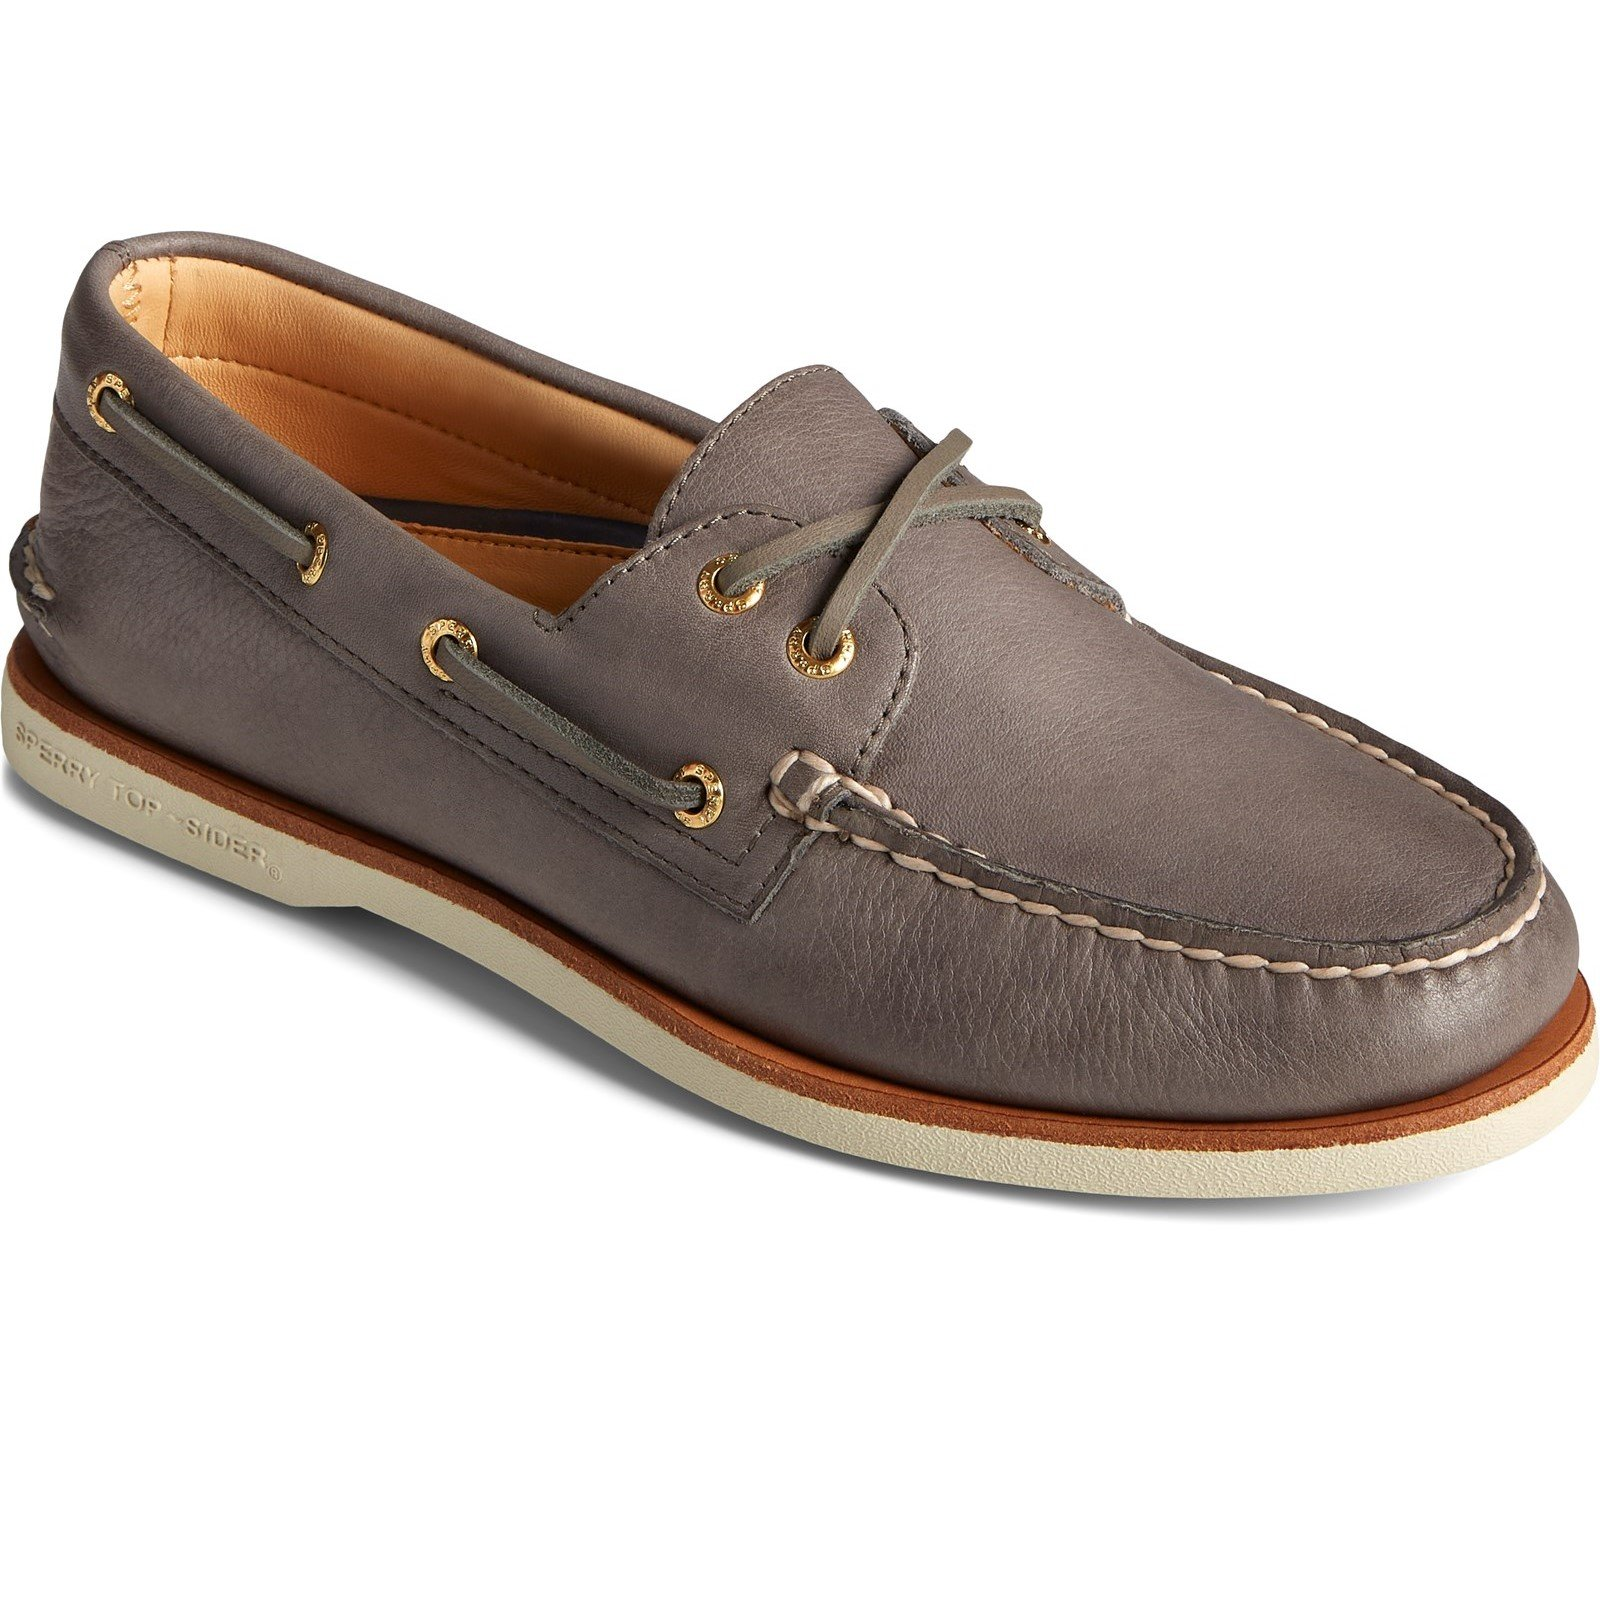 Sperry Men's A/O 2-Eye Boat Shoe Various Colours 32926 - Charcoal 6